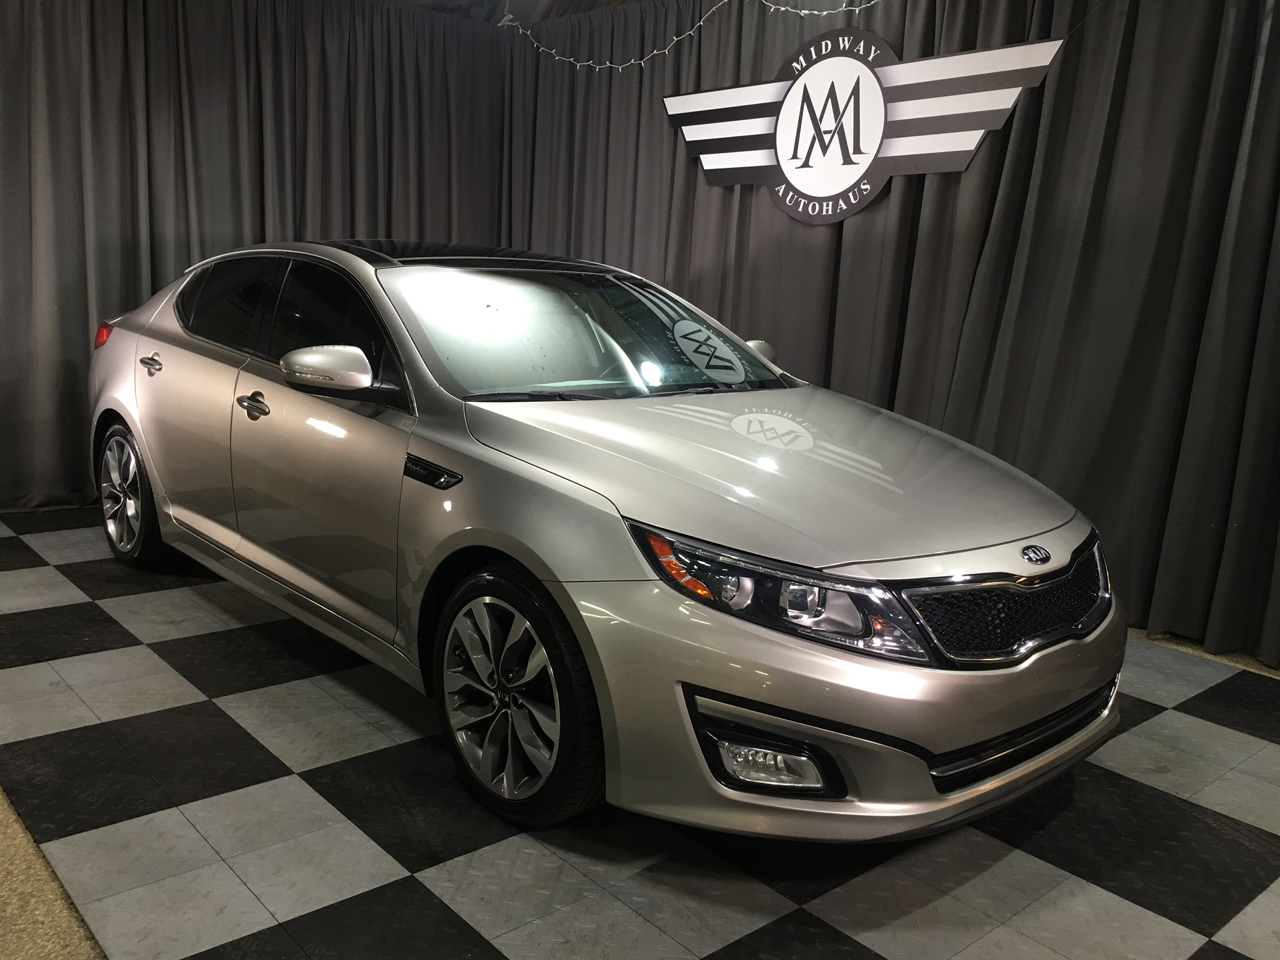 Pre-Owned 2015 Kia Optima 4dr Sdn SX Turbo